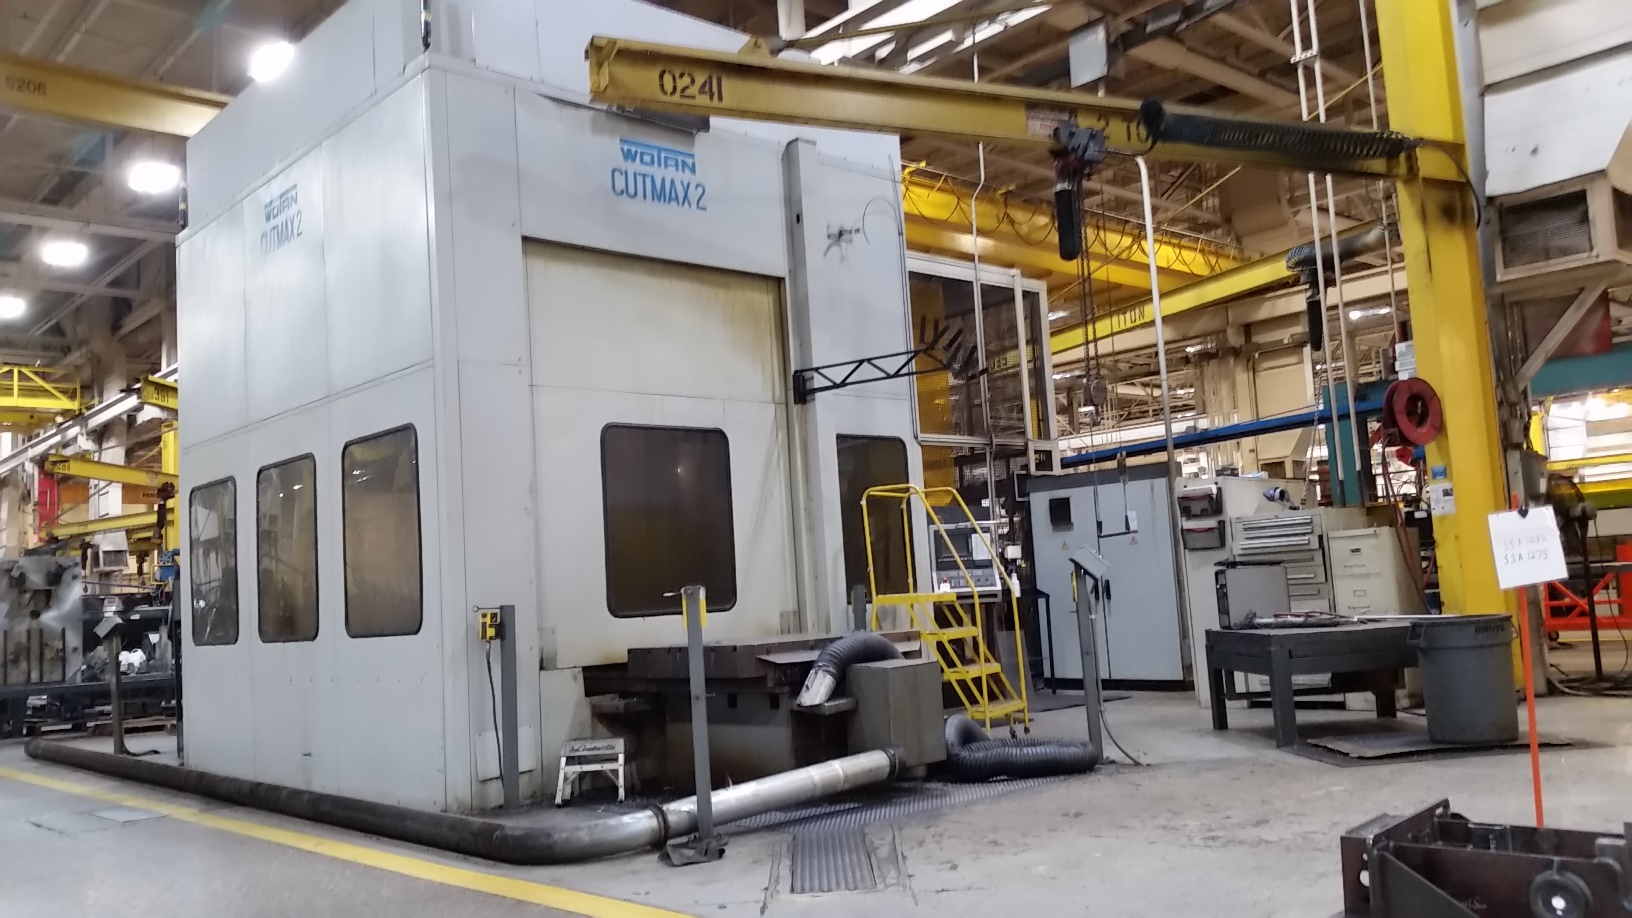 "4.75"" WOTAN CUTMAX II, DUAL 55 X 63 PALLETS, 71 LONG. X 67 VERT. X 53 IN/OUT X 24 QUILL, 240 ATC, THRU SPINDLE COOLANT, 4 TH AXIS, 3000 RPM, 41 HP, SIEMENS 840C CONTROL, 1996"